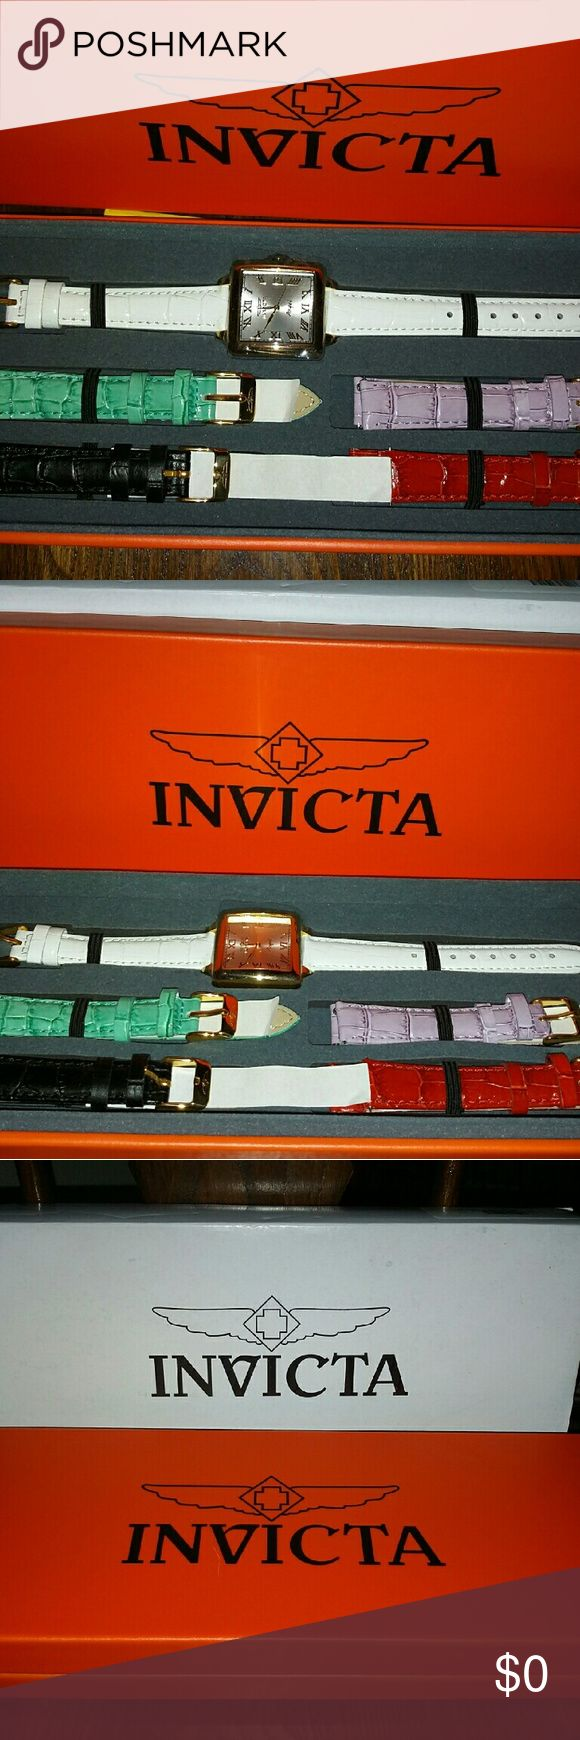 Invicta Womens Watch Brand New womens watch with interchageable wrist bands. In original box. Invicta Accessories Watches